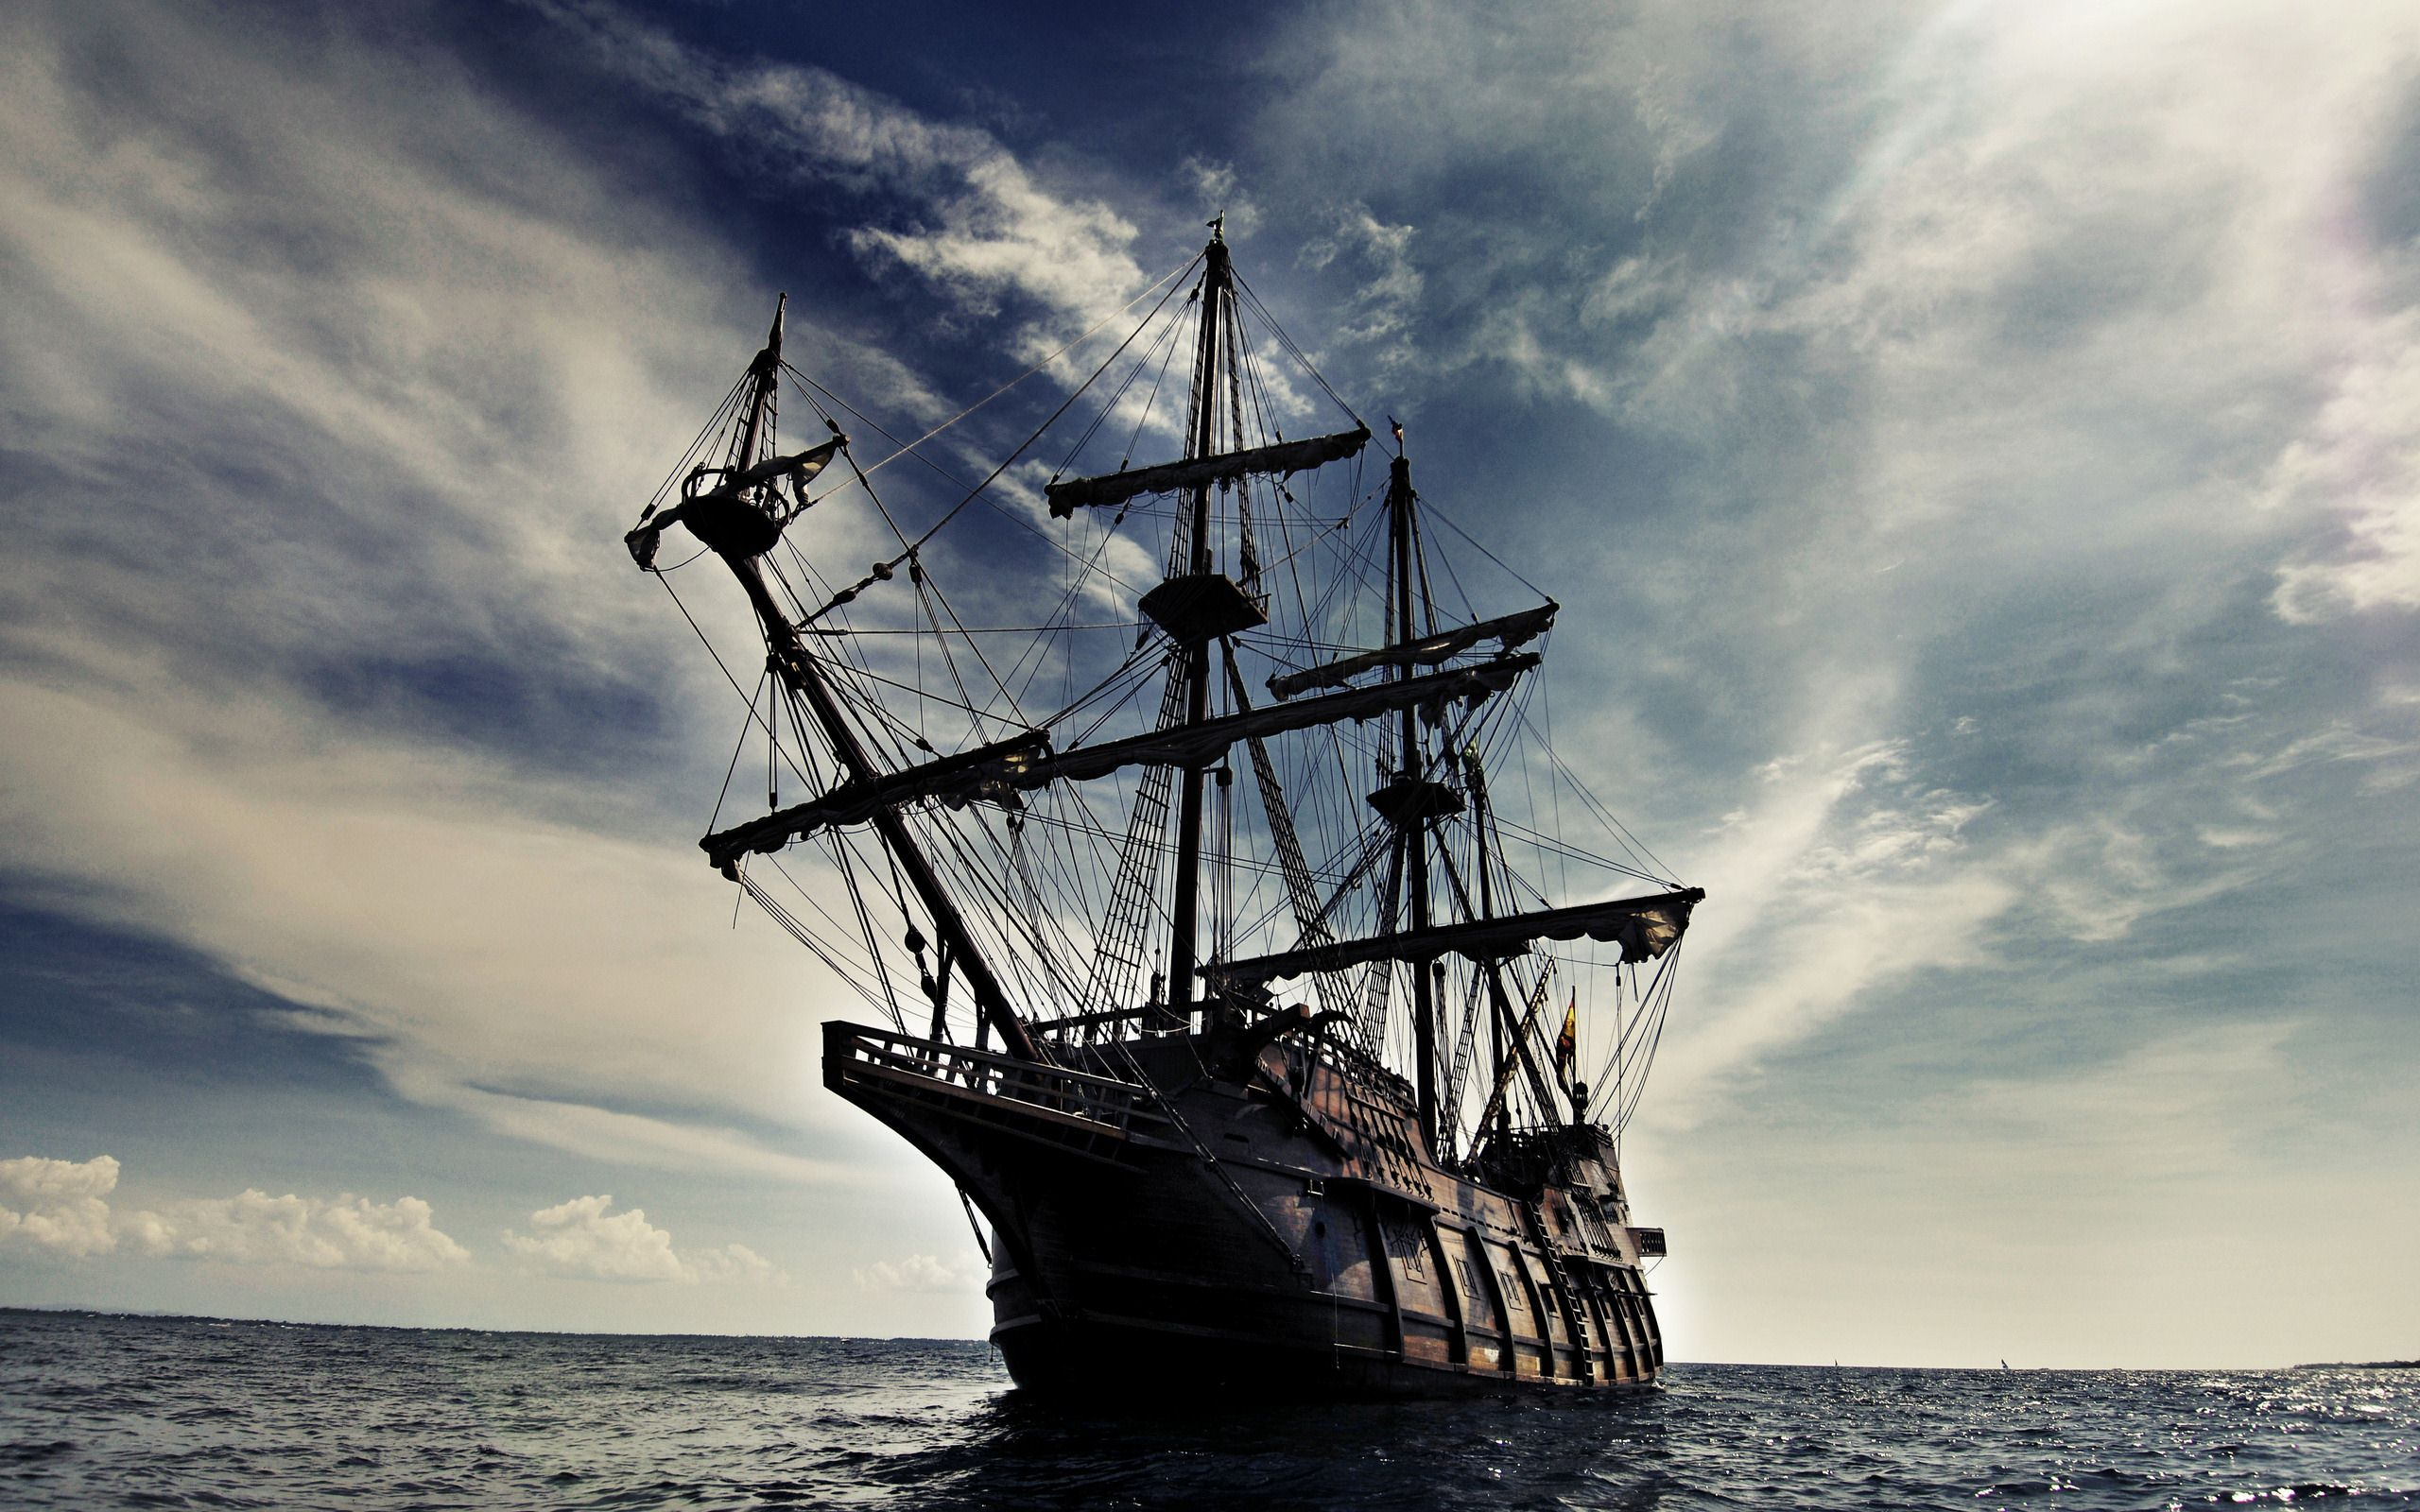 Pirates Of The Caribbean Black Pearl Wallpaper For Iphone Pk7